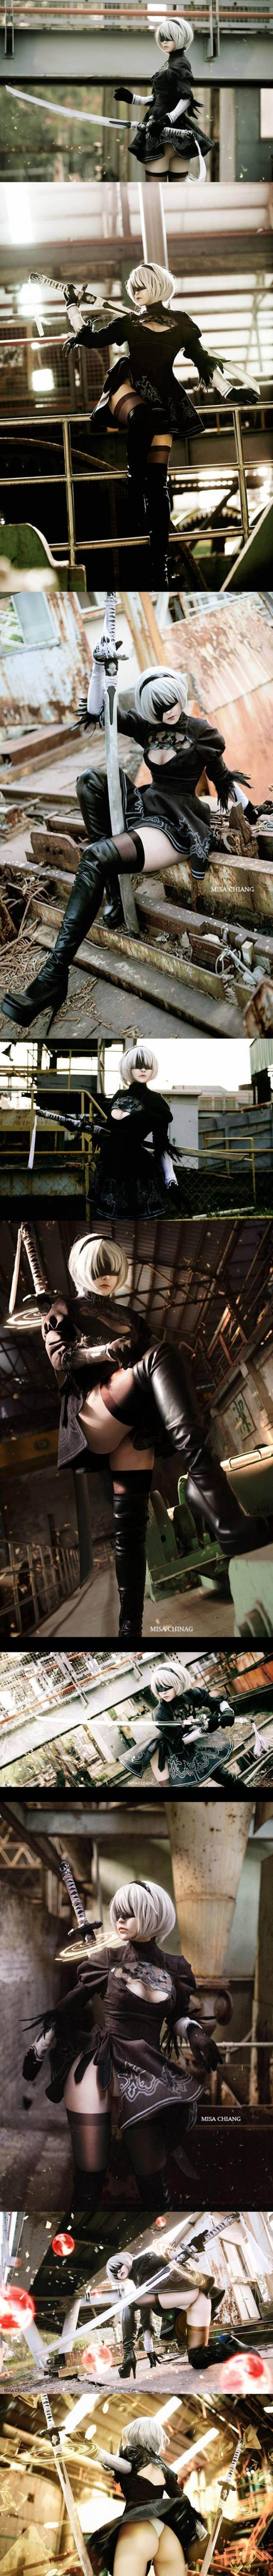 Nier automata 2B cosplay - COSPLAY IS BAEEE!!! Tap the pin now to grab yourself some BAE Cosplay leggings and shirts! From super hero fitness leggings, super hero fitness shirts, and so much more that wil make you say YASSS!!! Ps: là nam đấy ạh